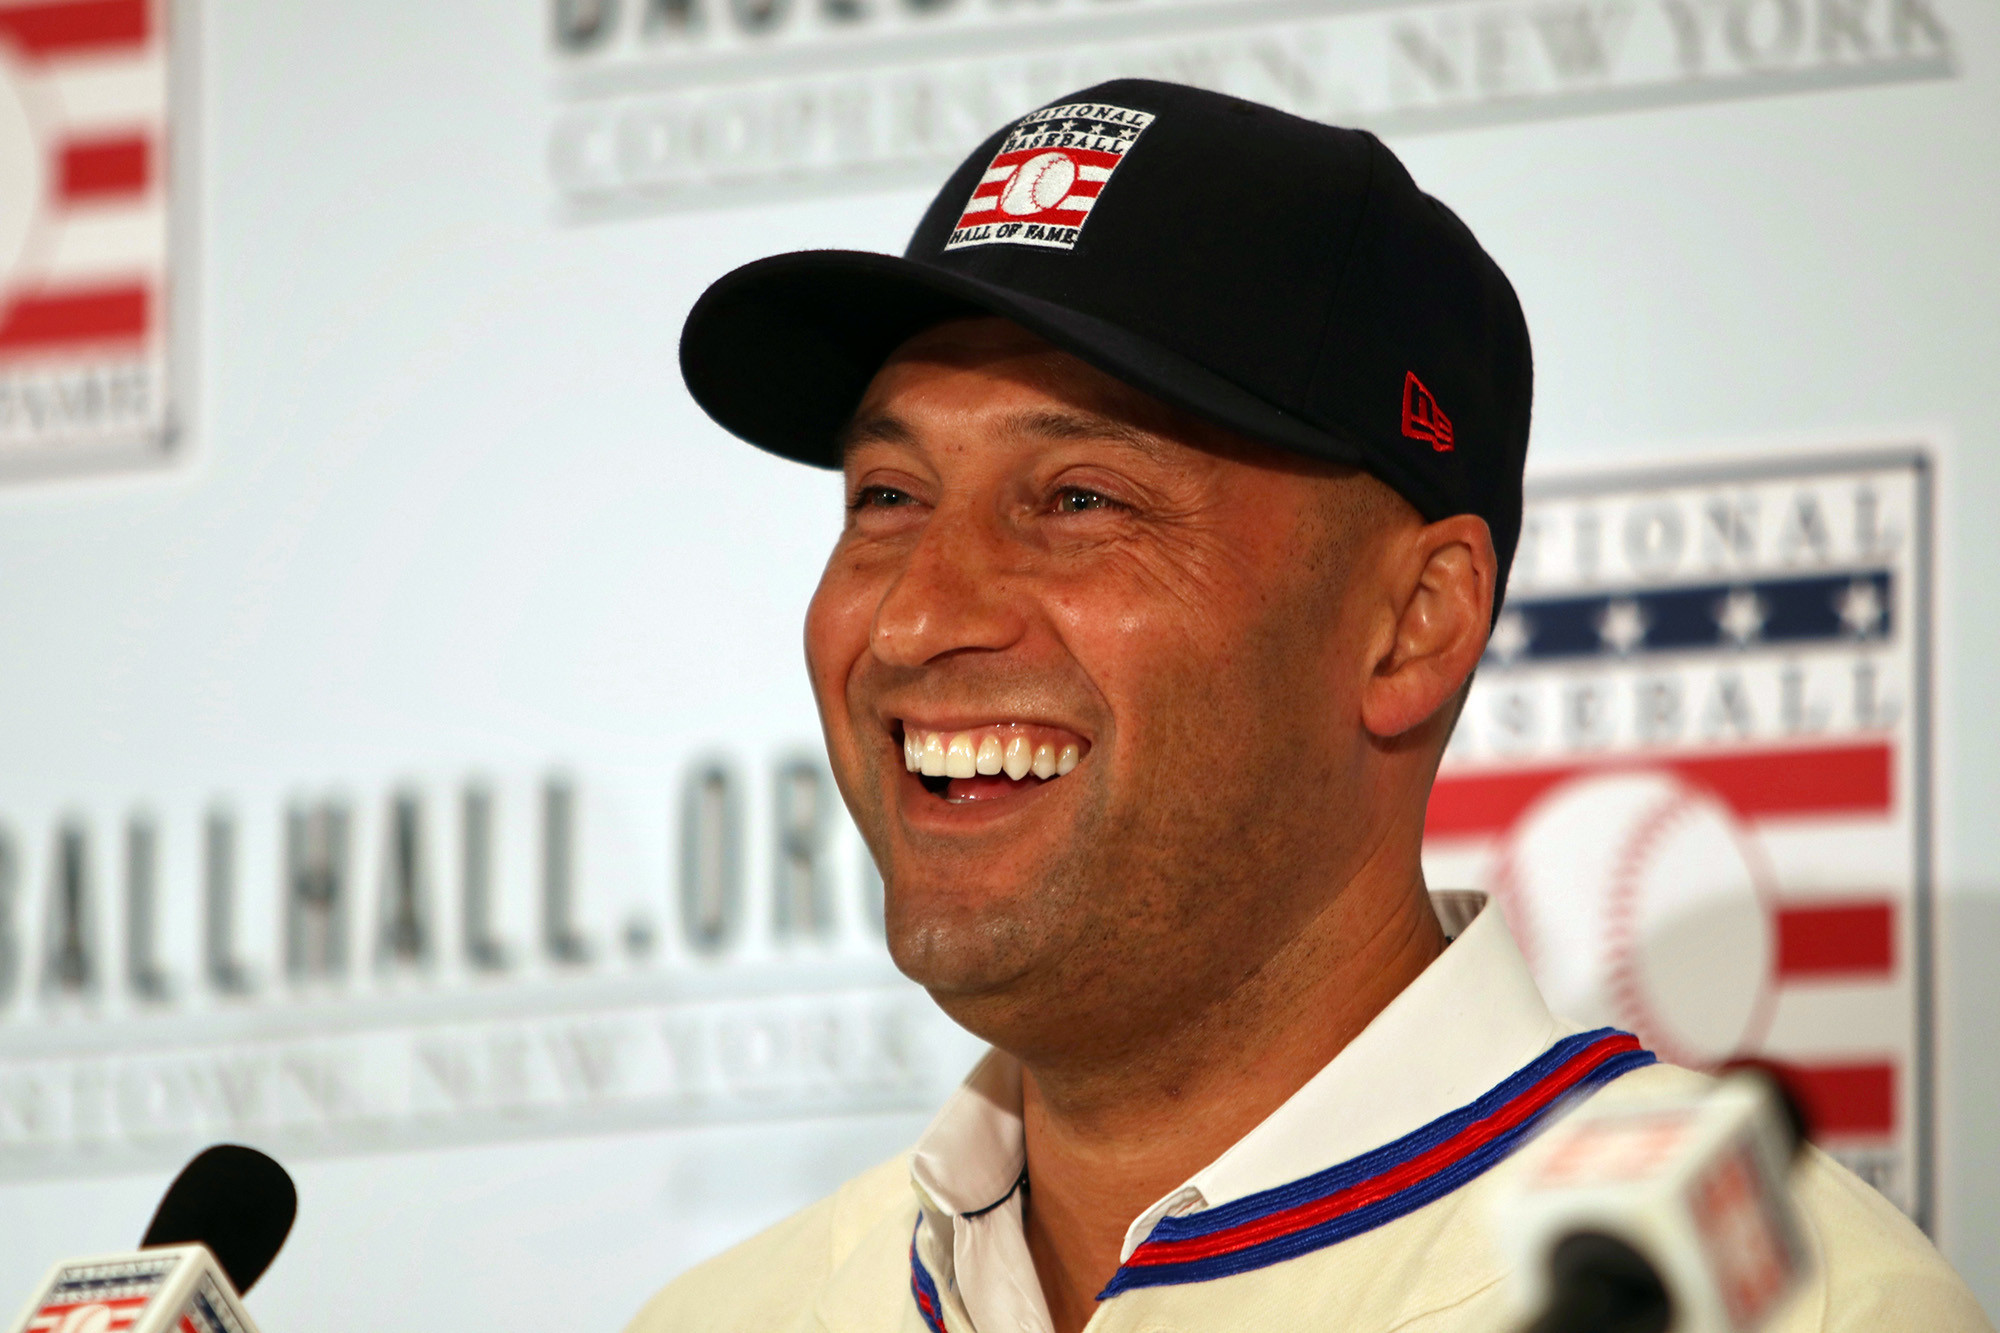 Derek Jeter now understands how special his Hall of Fame career really was